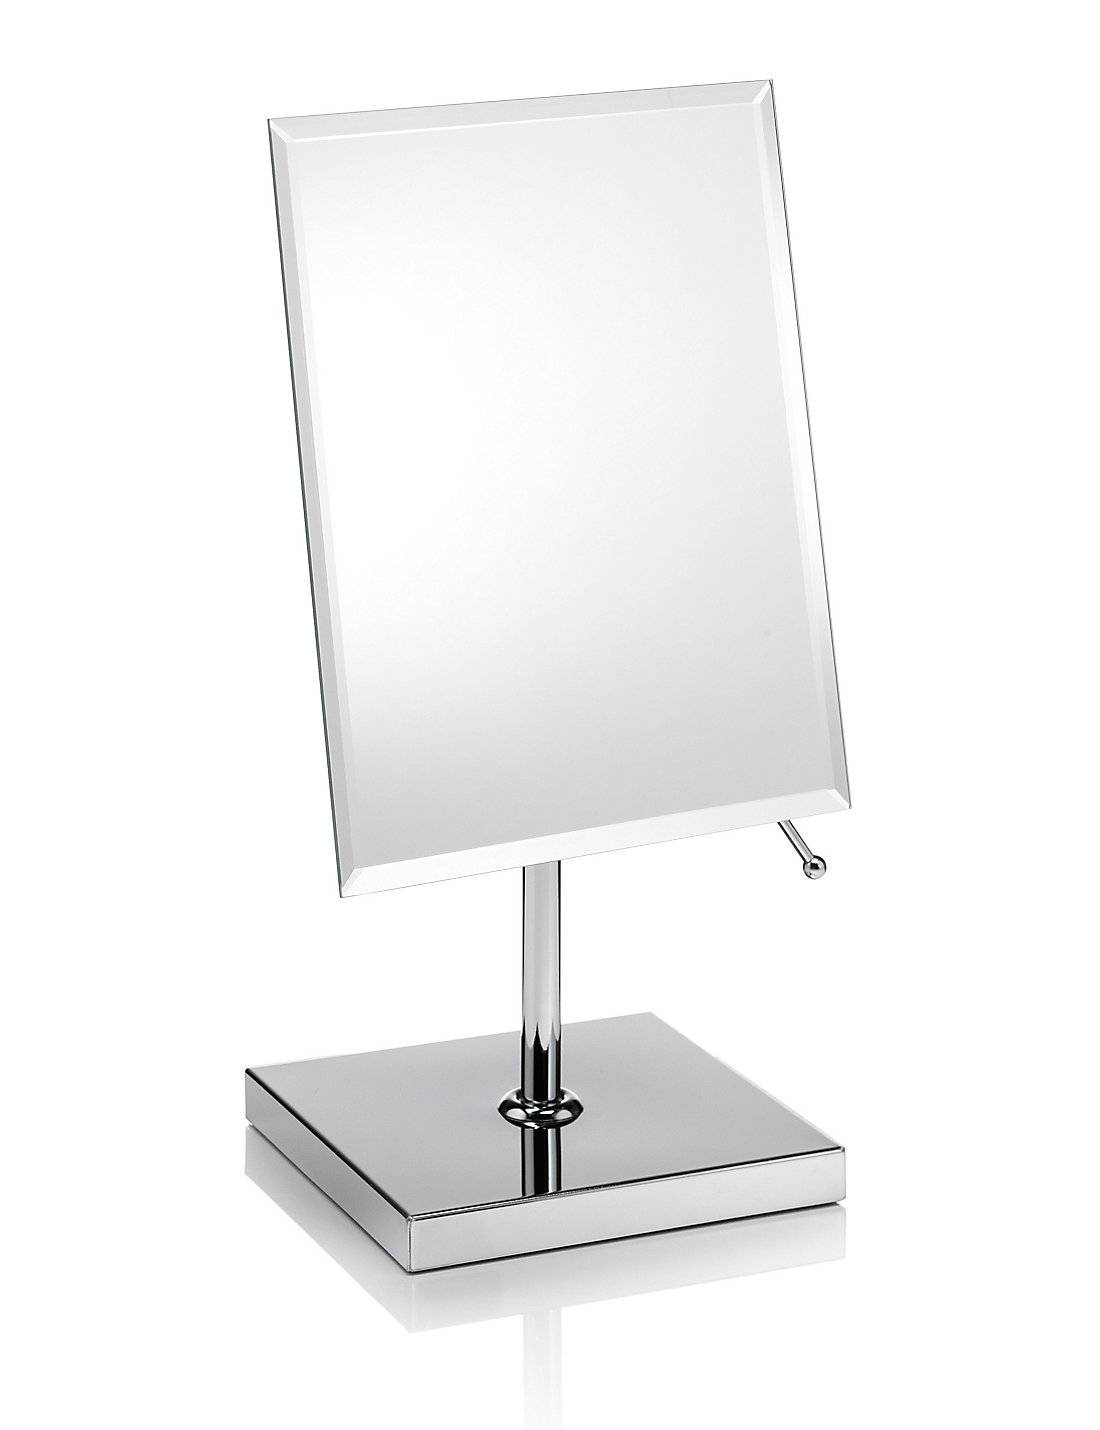 Large Free Standing Bathroom Mirrors | Home with Long Free Standing Mirrors (Image 15 of 25)